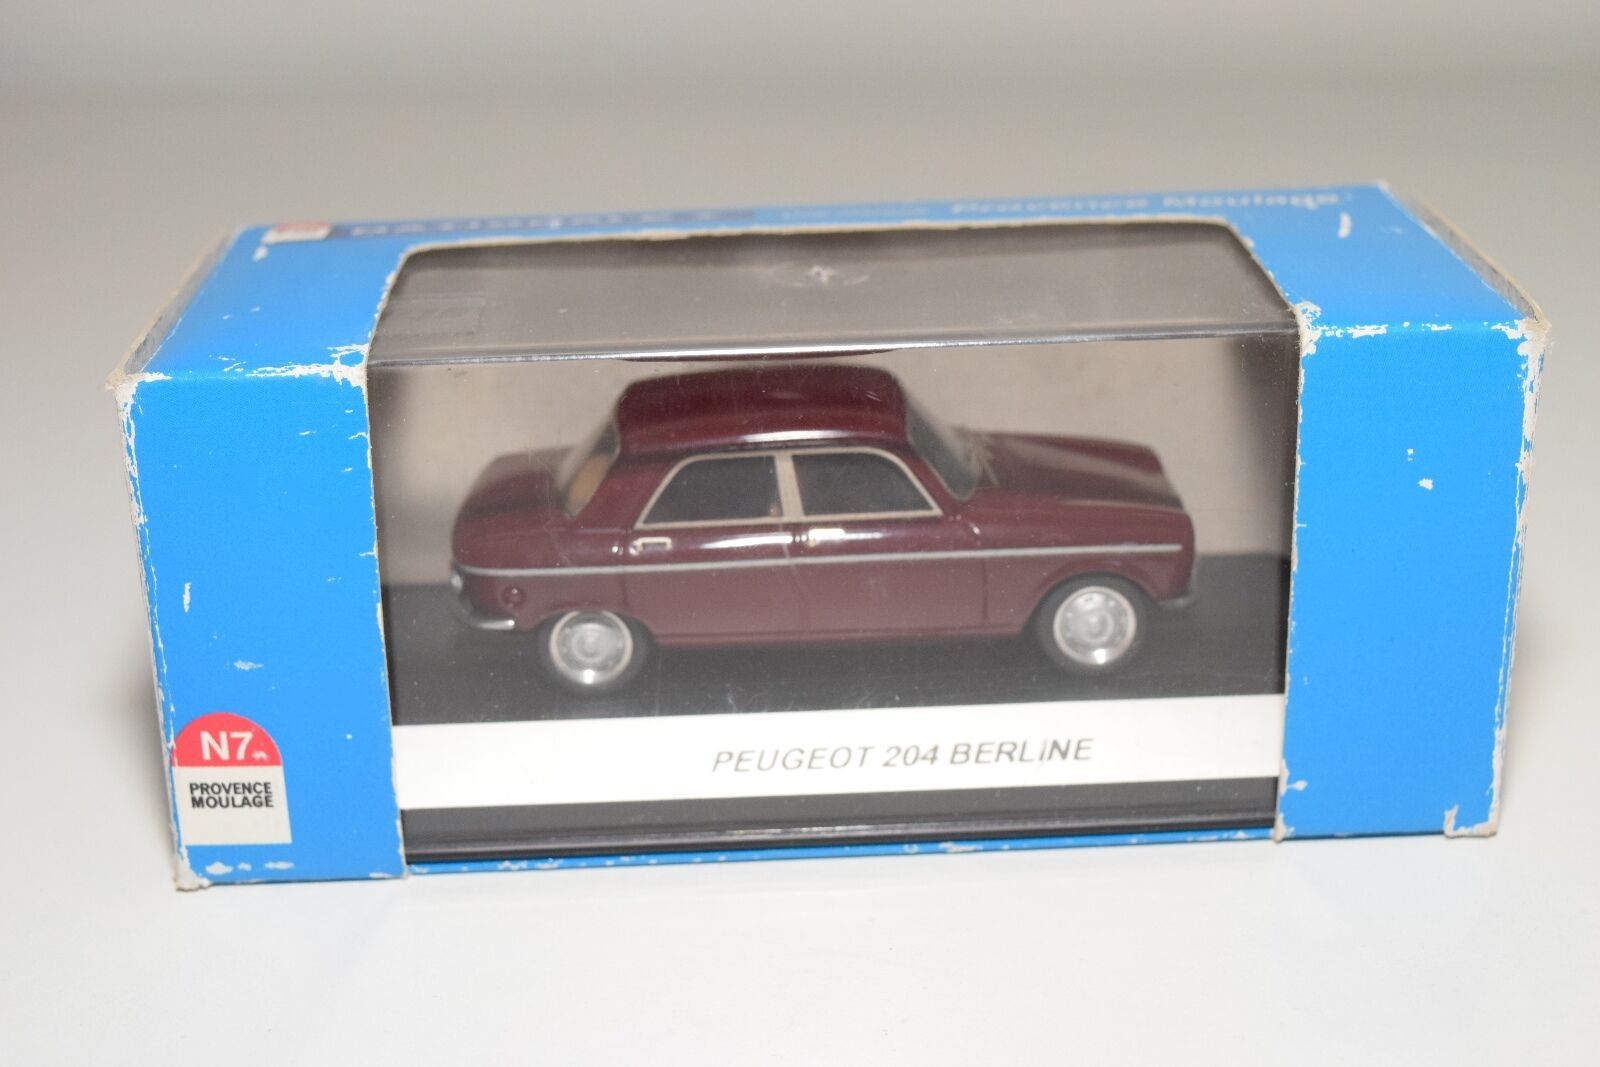 . PROVENCE MOULAGE N042 PEUGEOT 204 BERLINE MAROON MINT BOXED